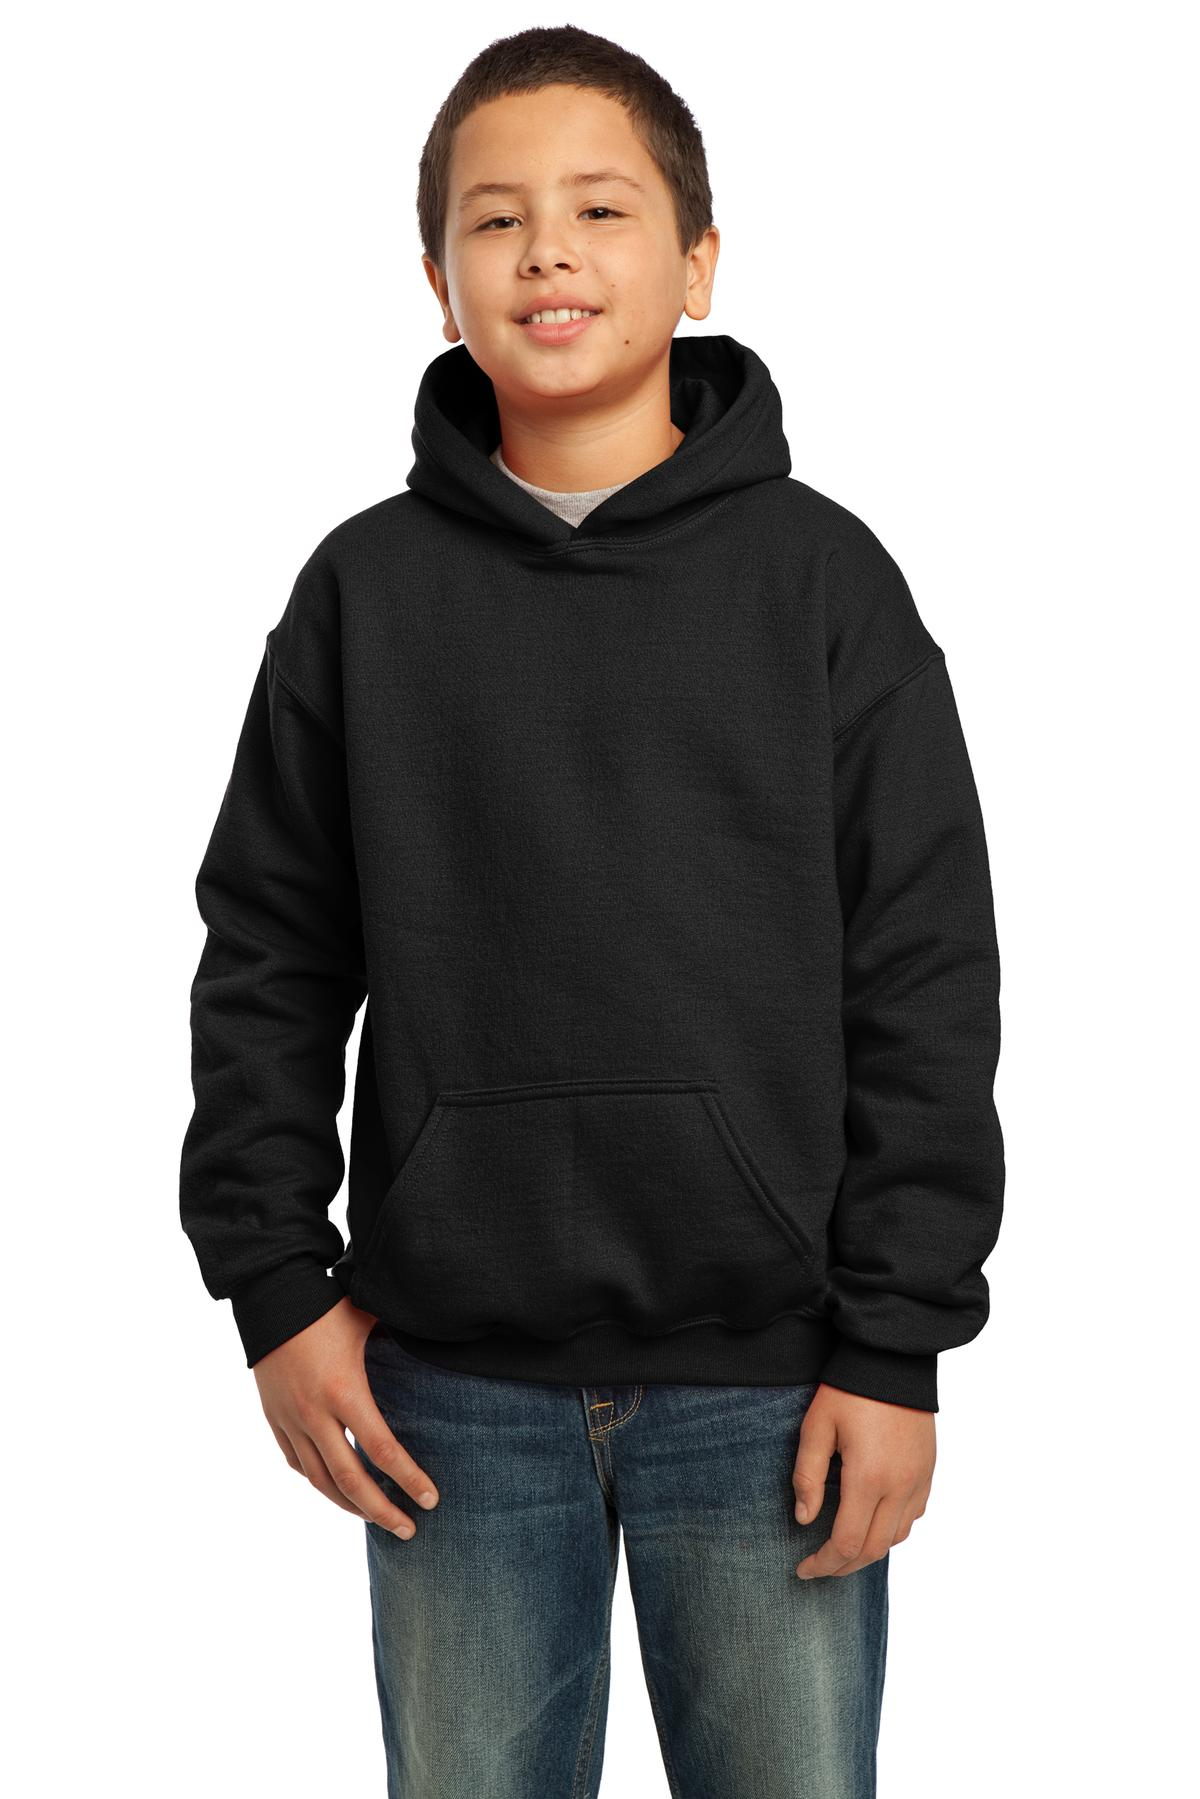 Gildan ®  - Youth Heavy Blend™ Hooded Sweatshirt. 18500B